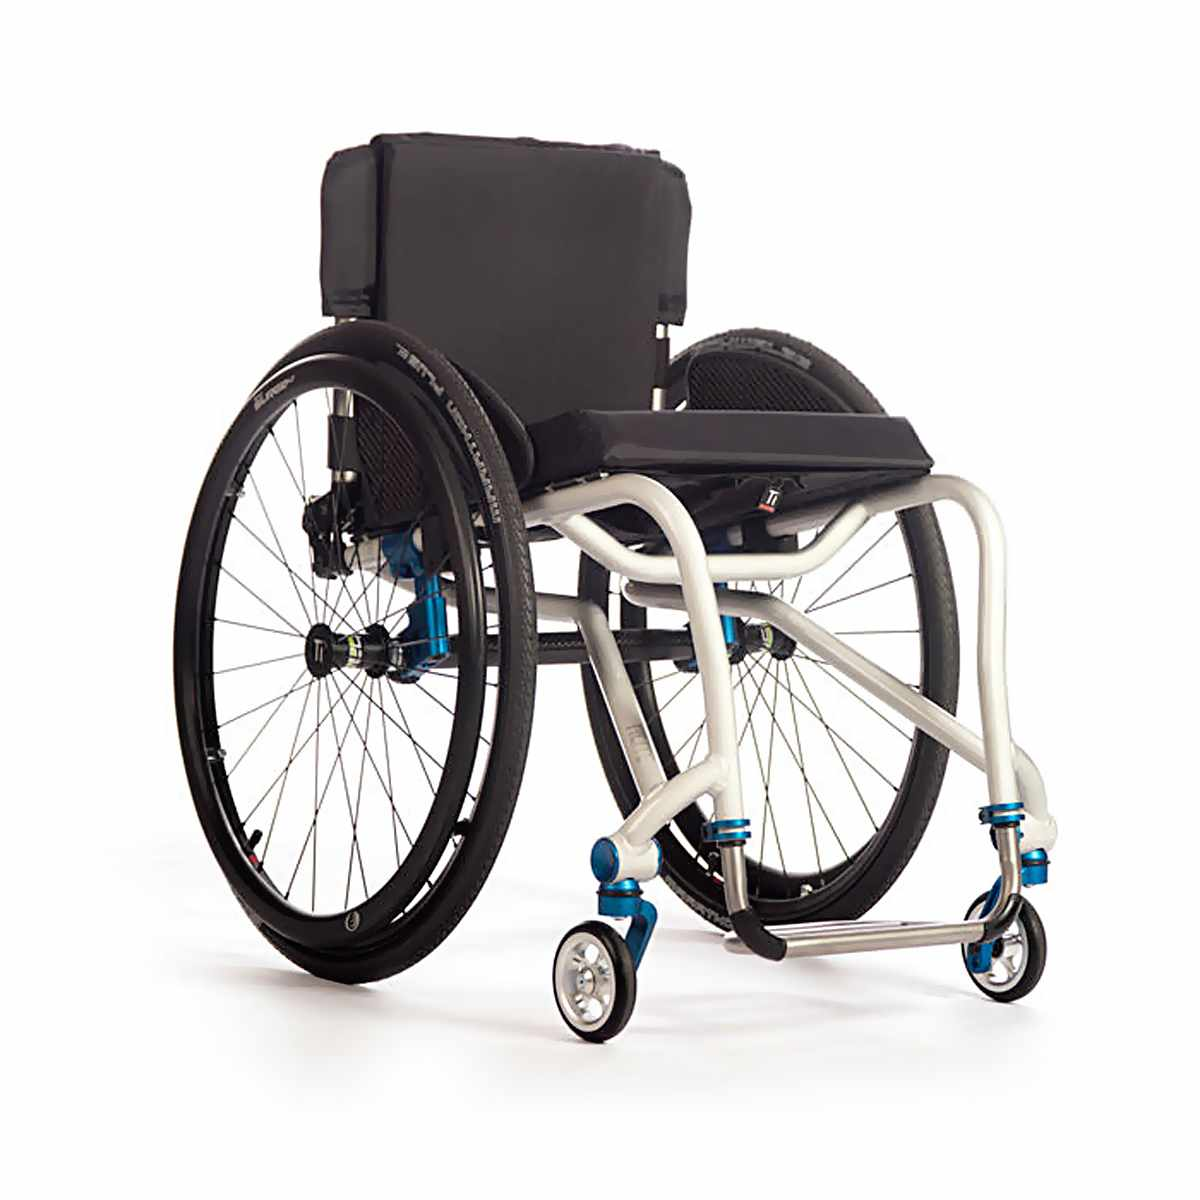 TiLite Aero T series rigid ultralight wheelchair